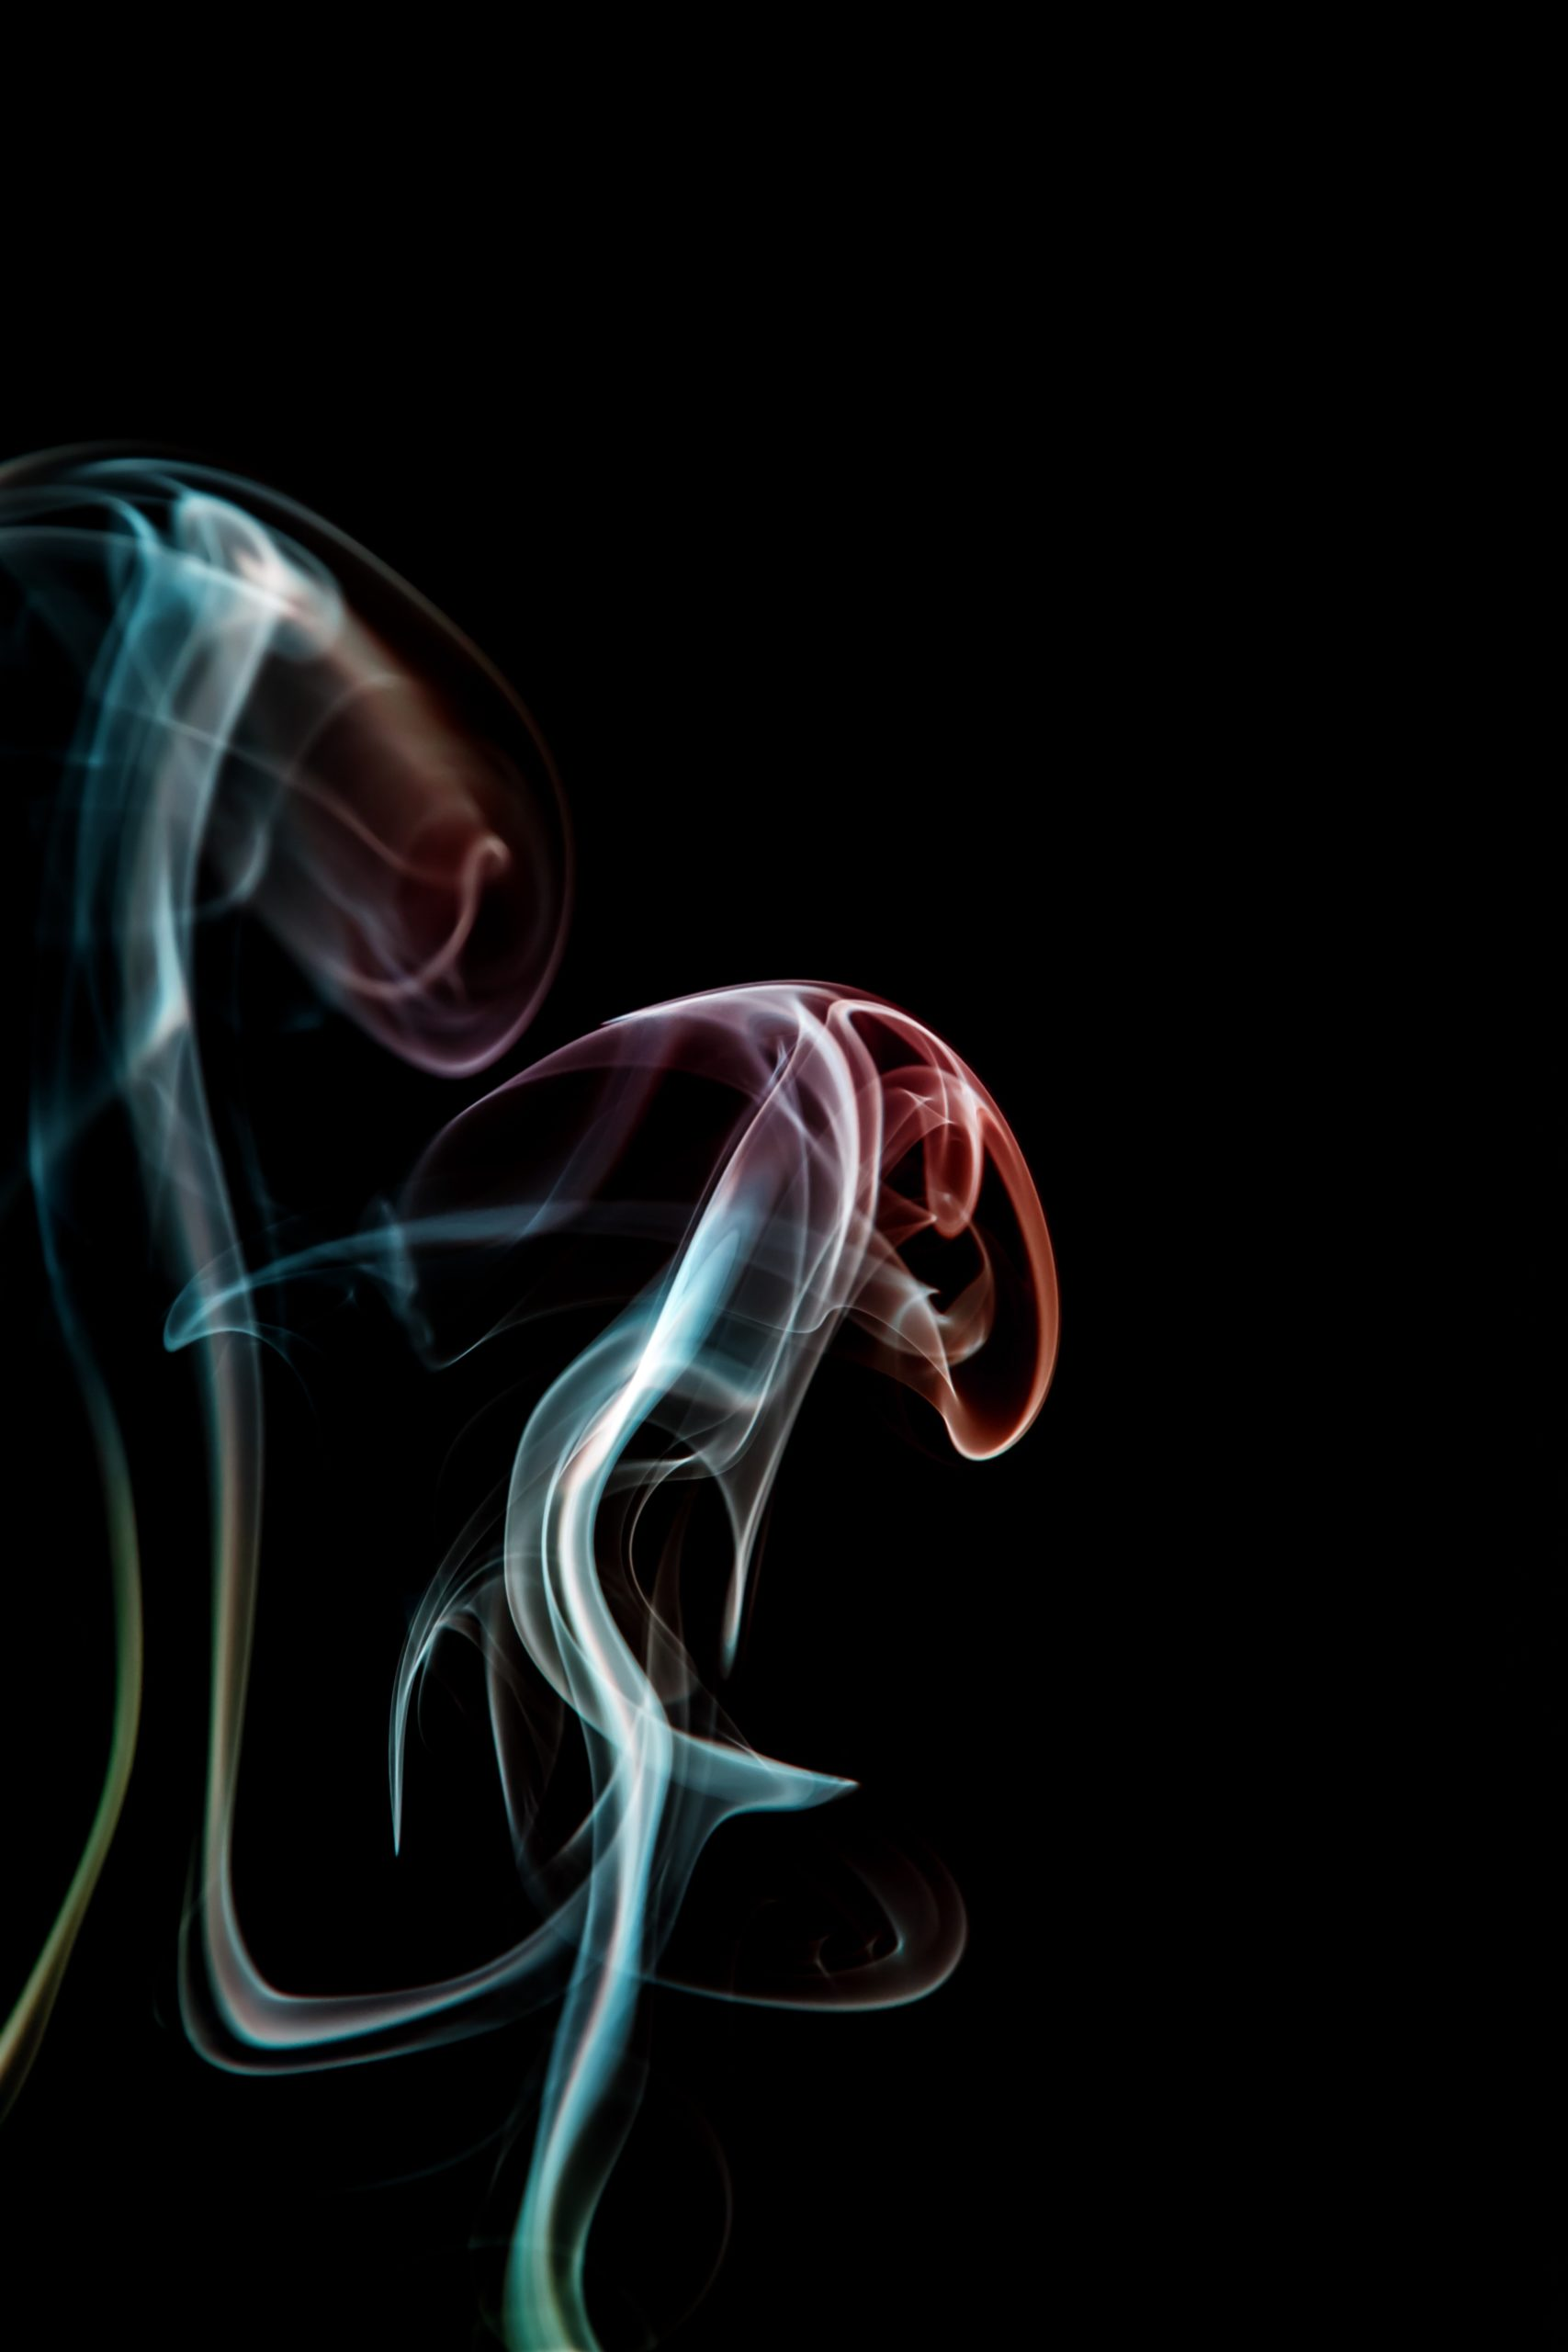 A tendril of smoke curls up on a black background. It is lit with red, blue, and green light.